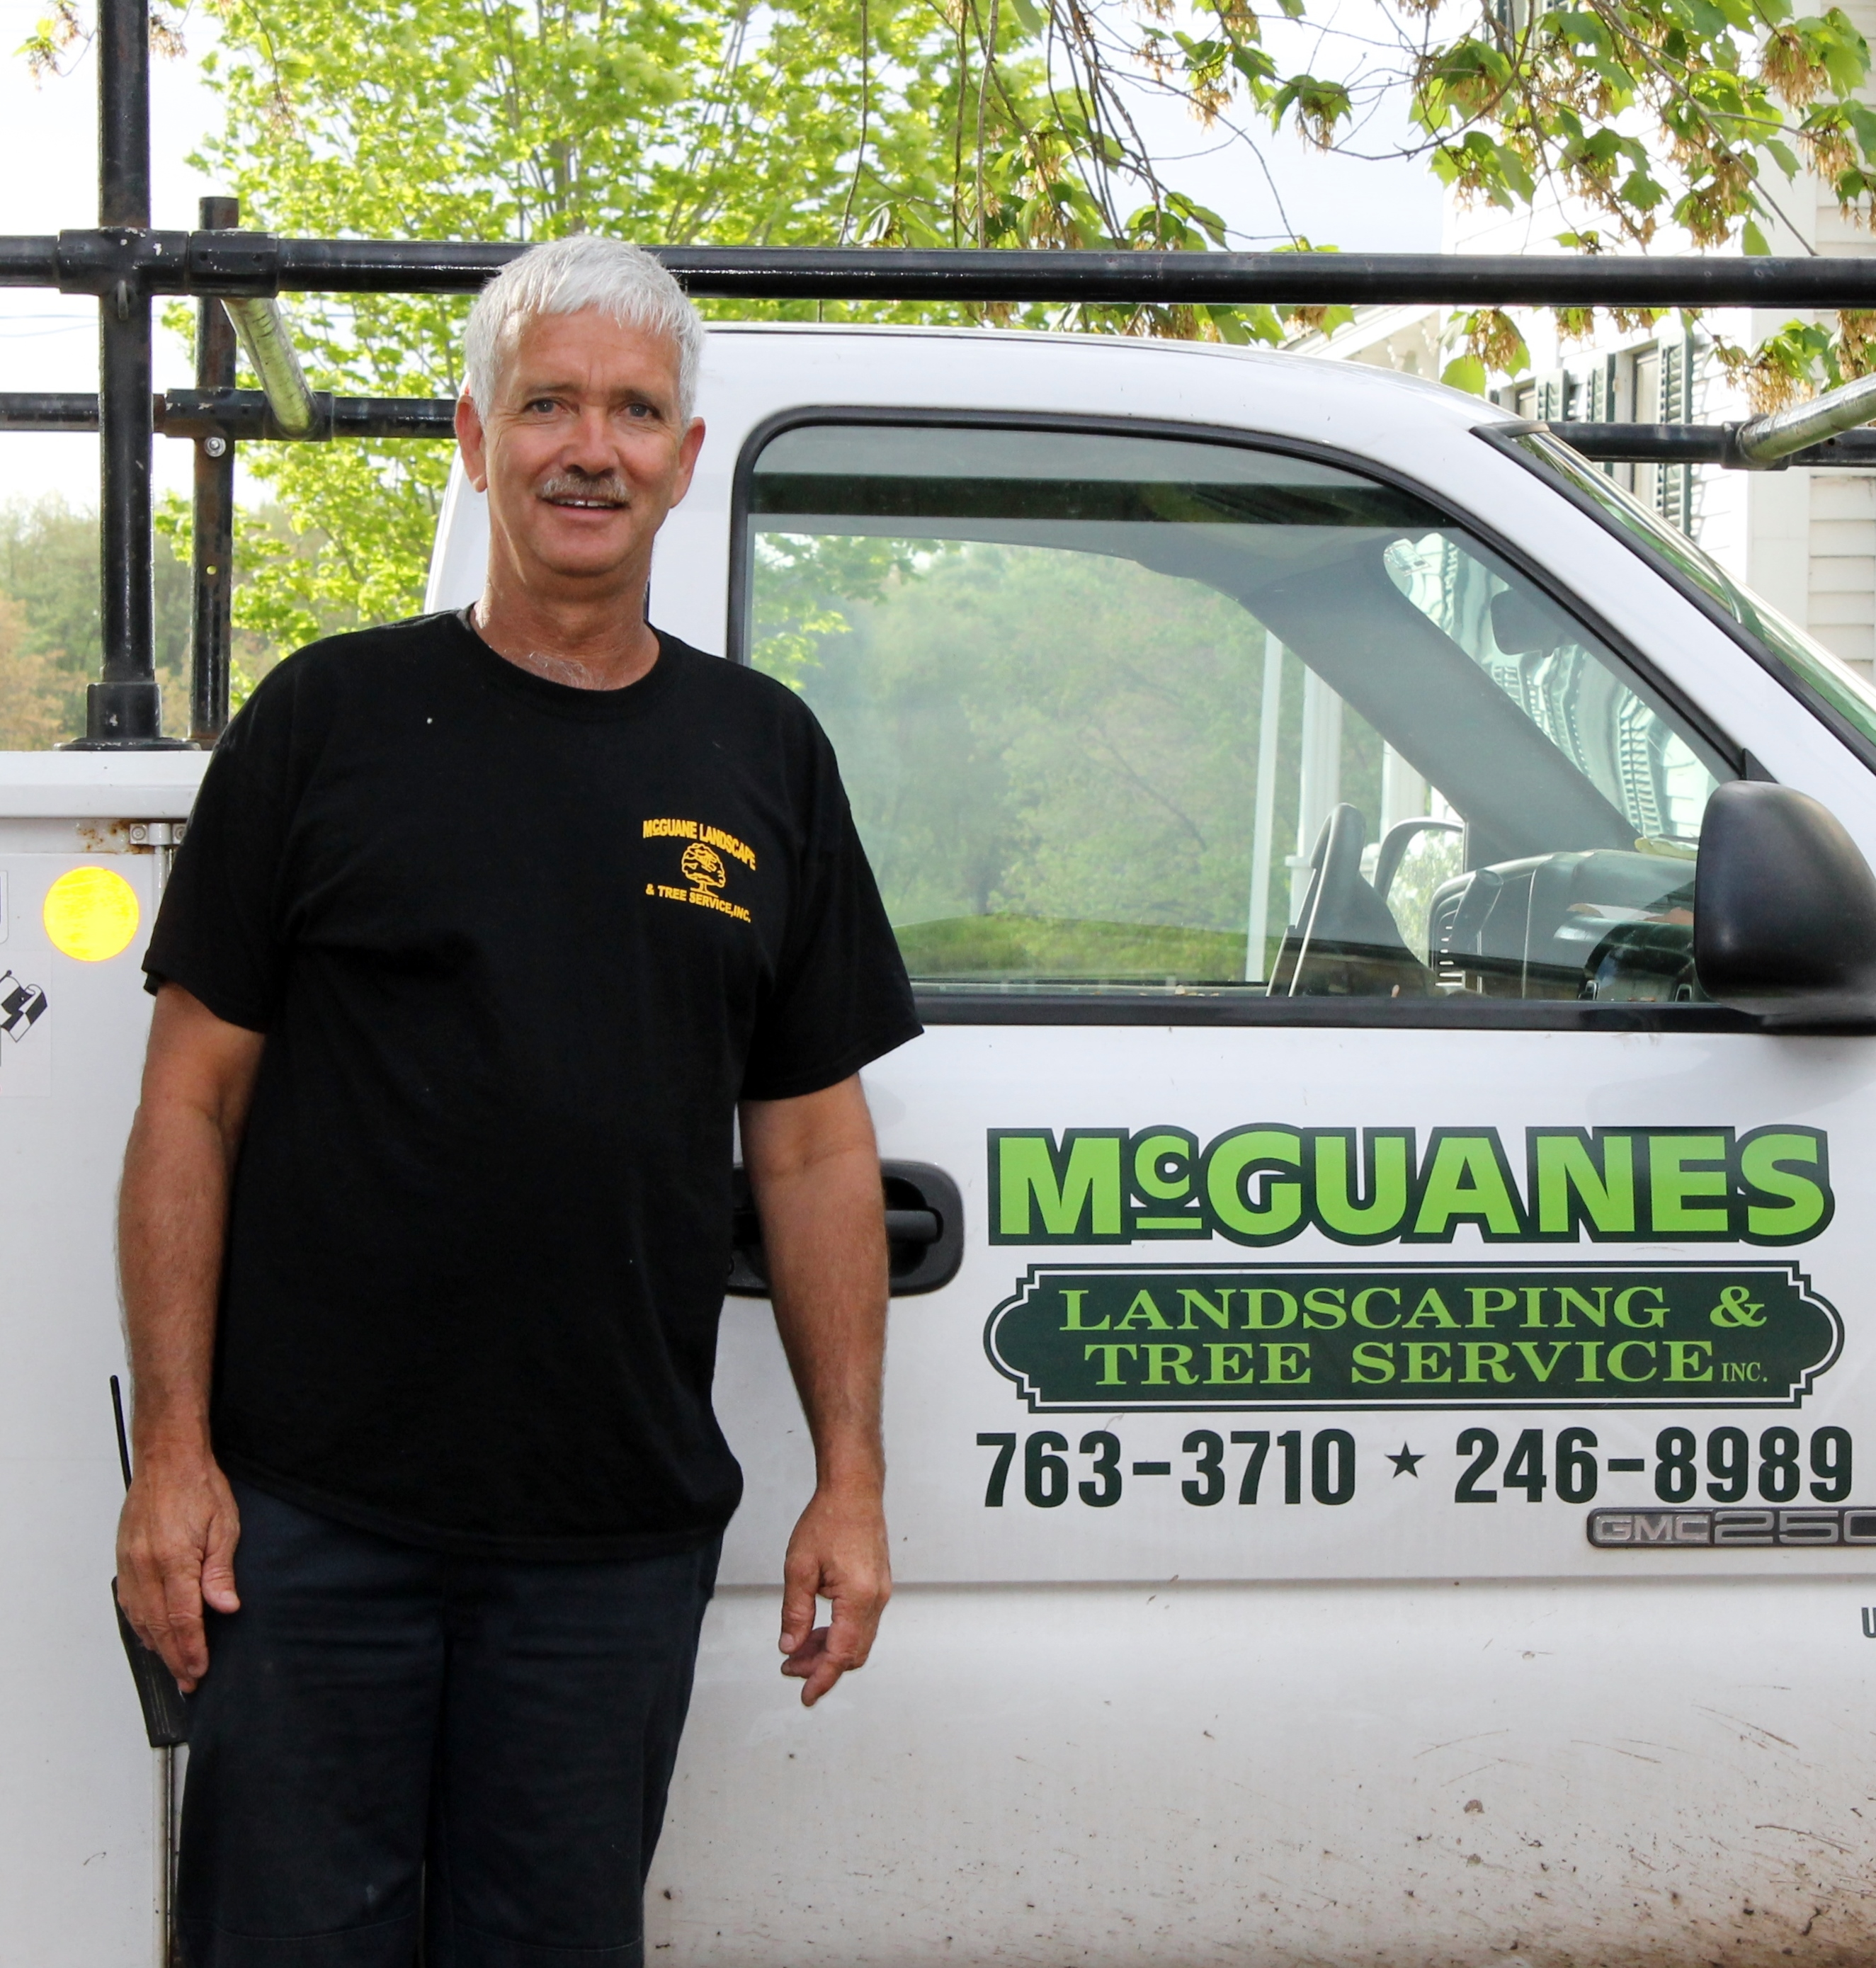 McGuanes Landscaping and Tree Service Inc. image 2